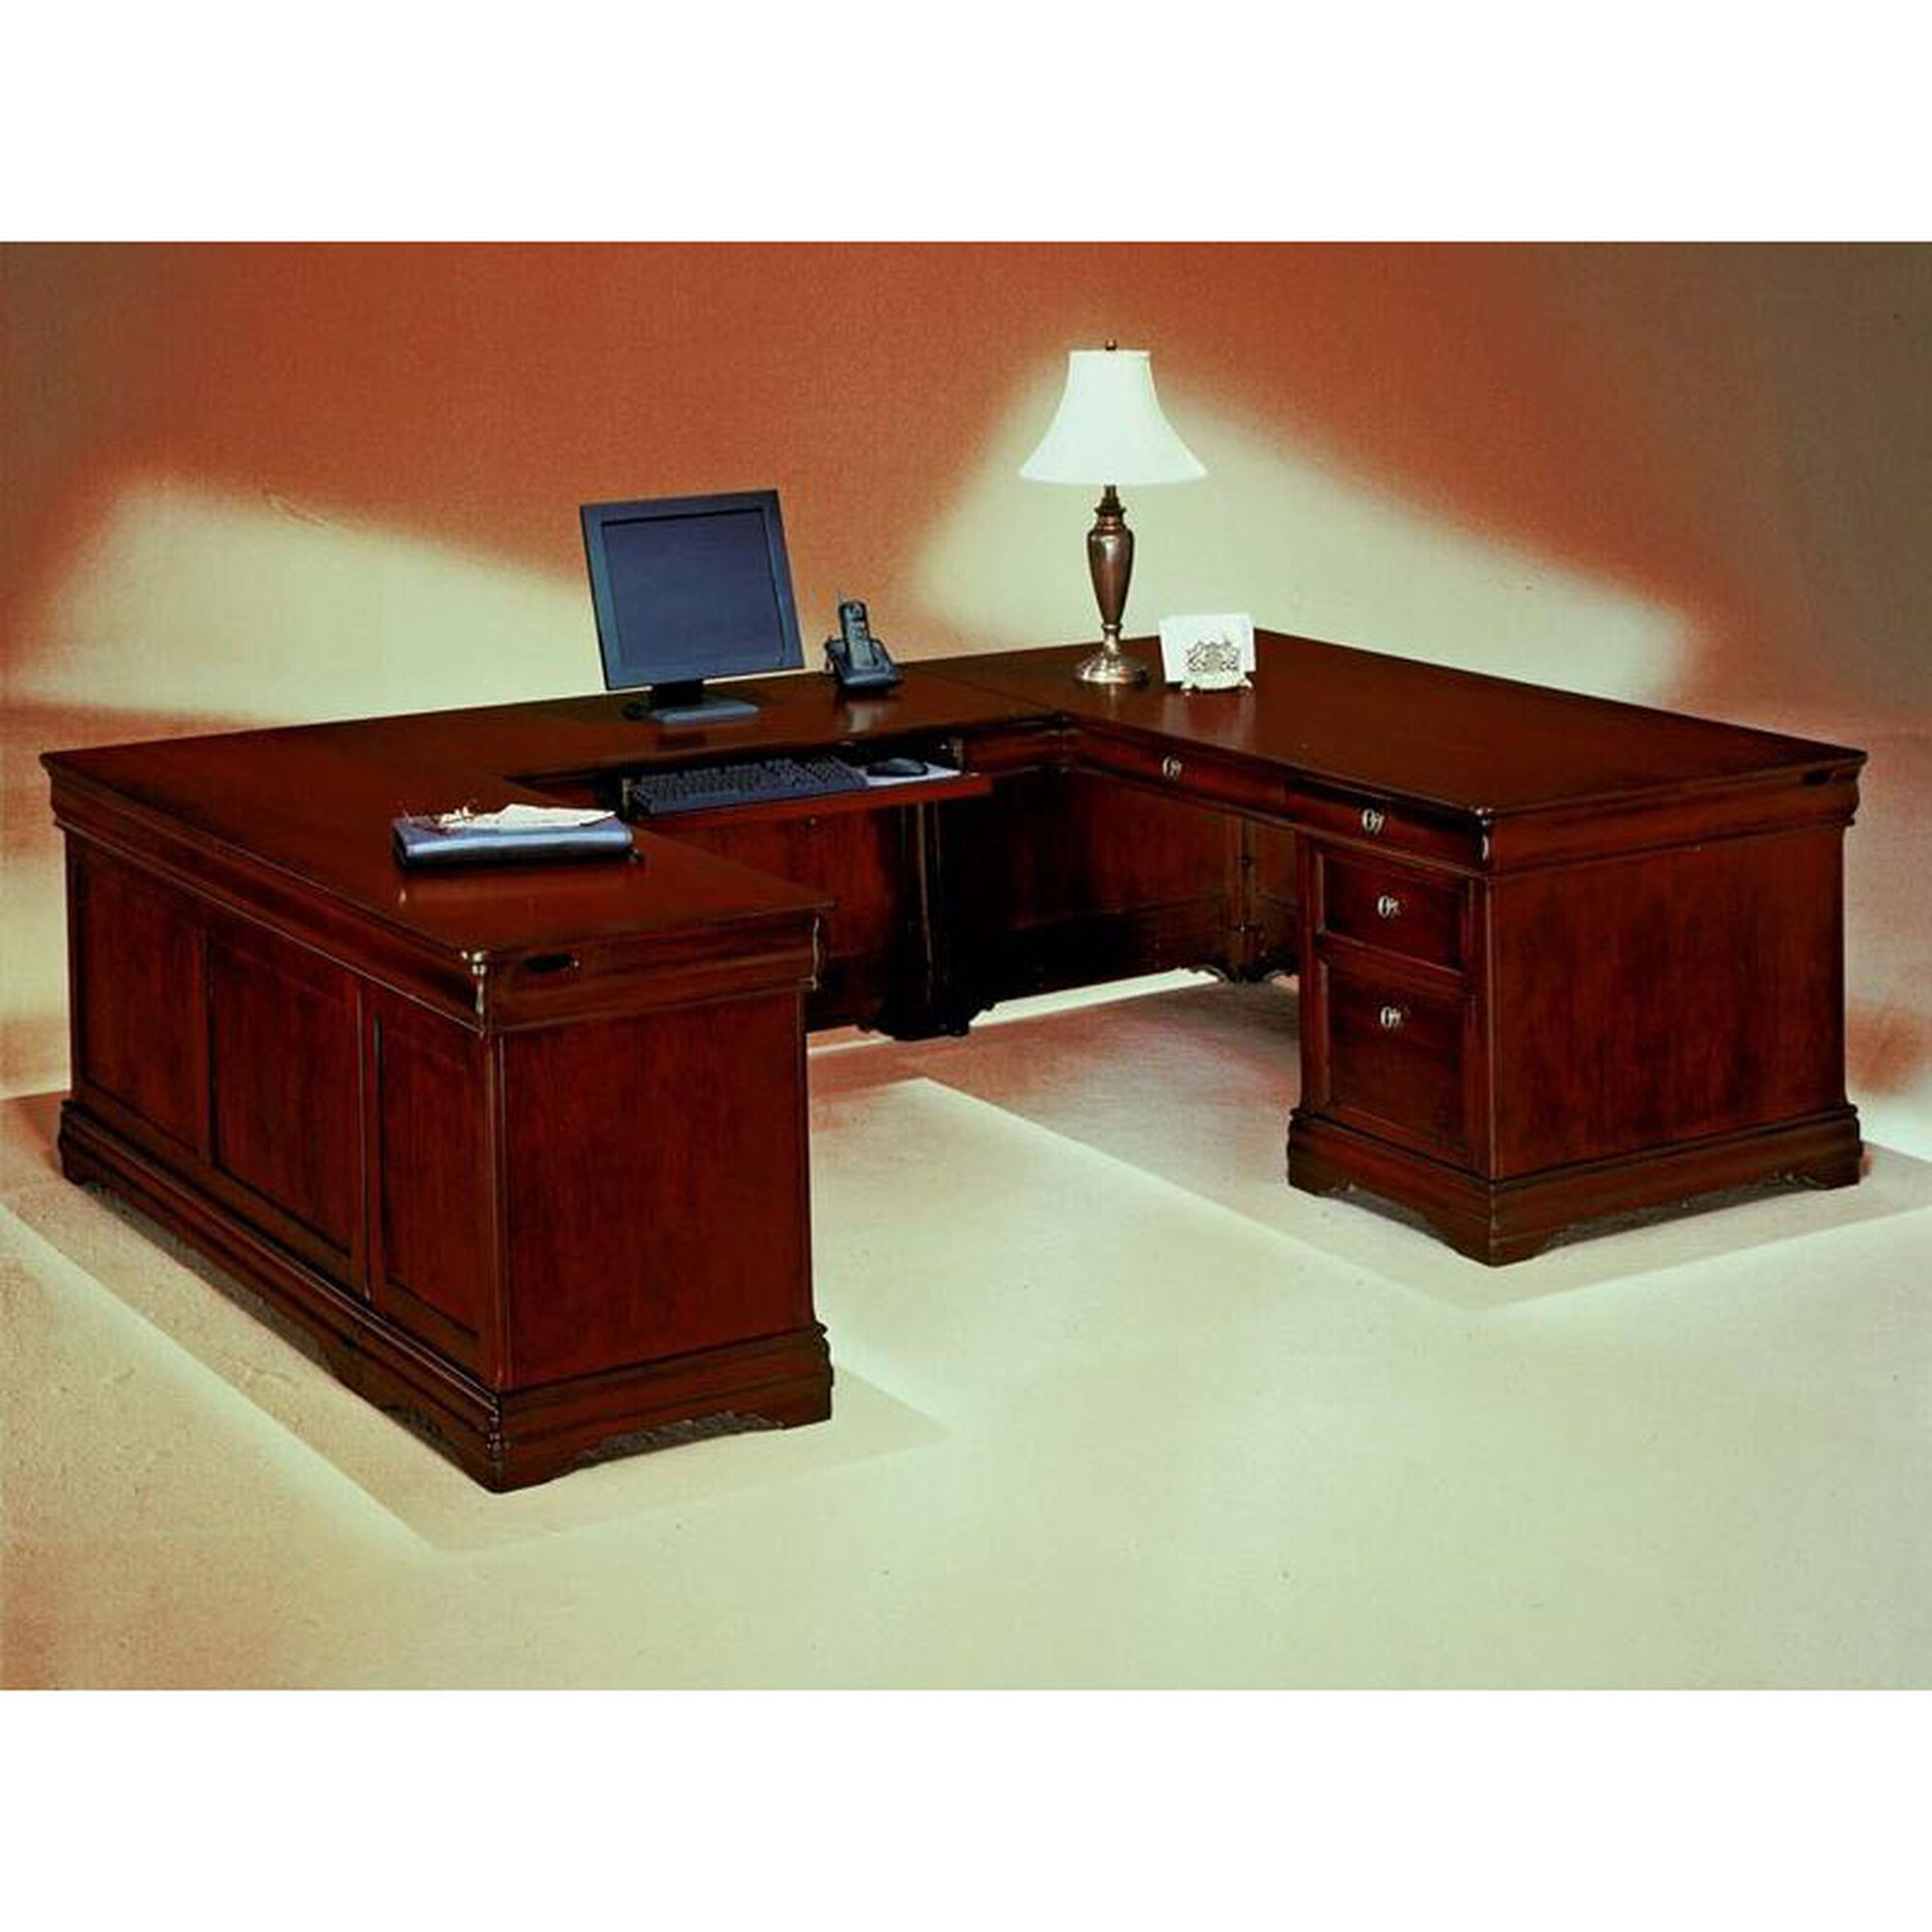 luxedecor desk office desks modern for shaped dmi regarding attractive furniture intended l sale grey amazing